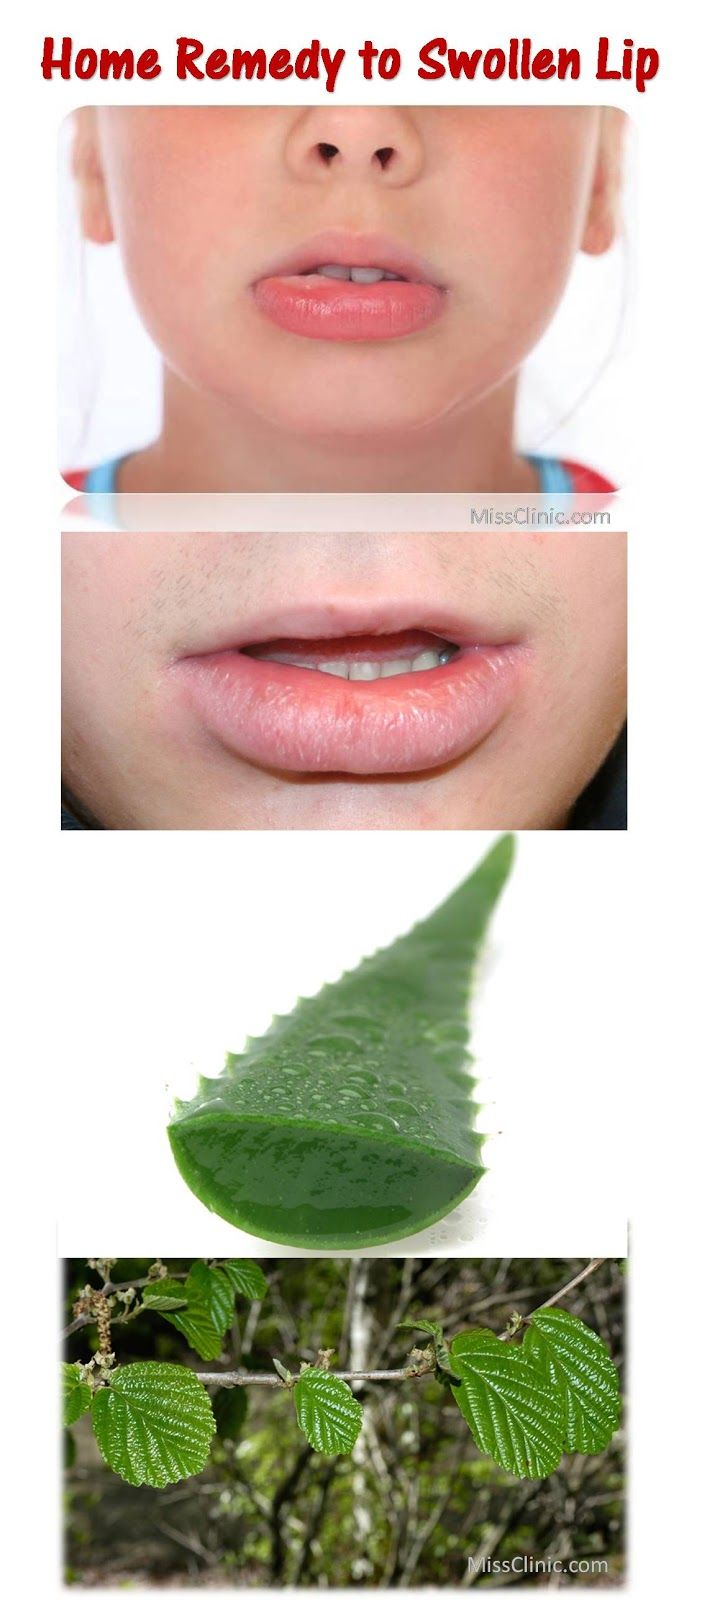 Cause and Remedy to Swollen Bottom Lip